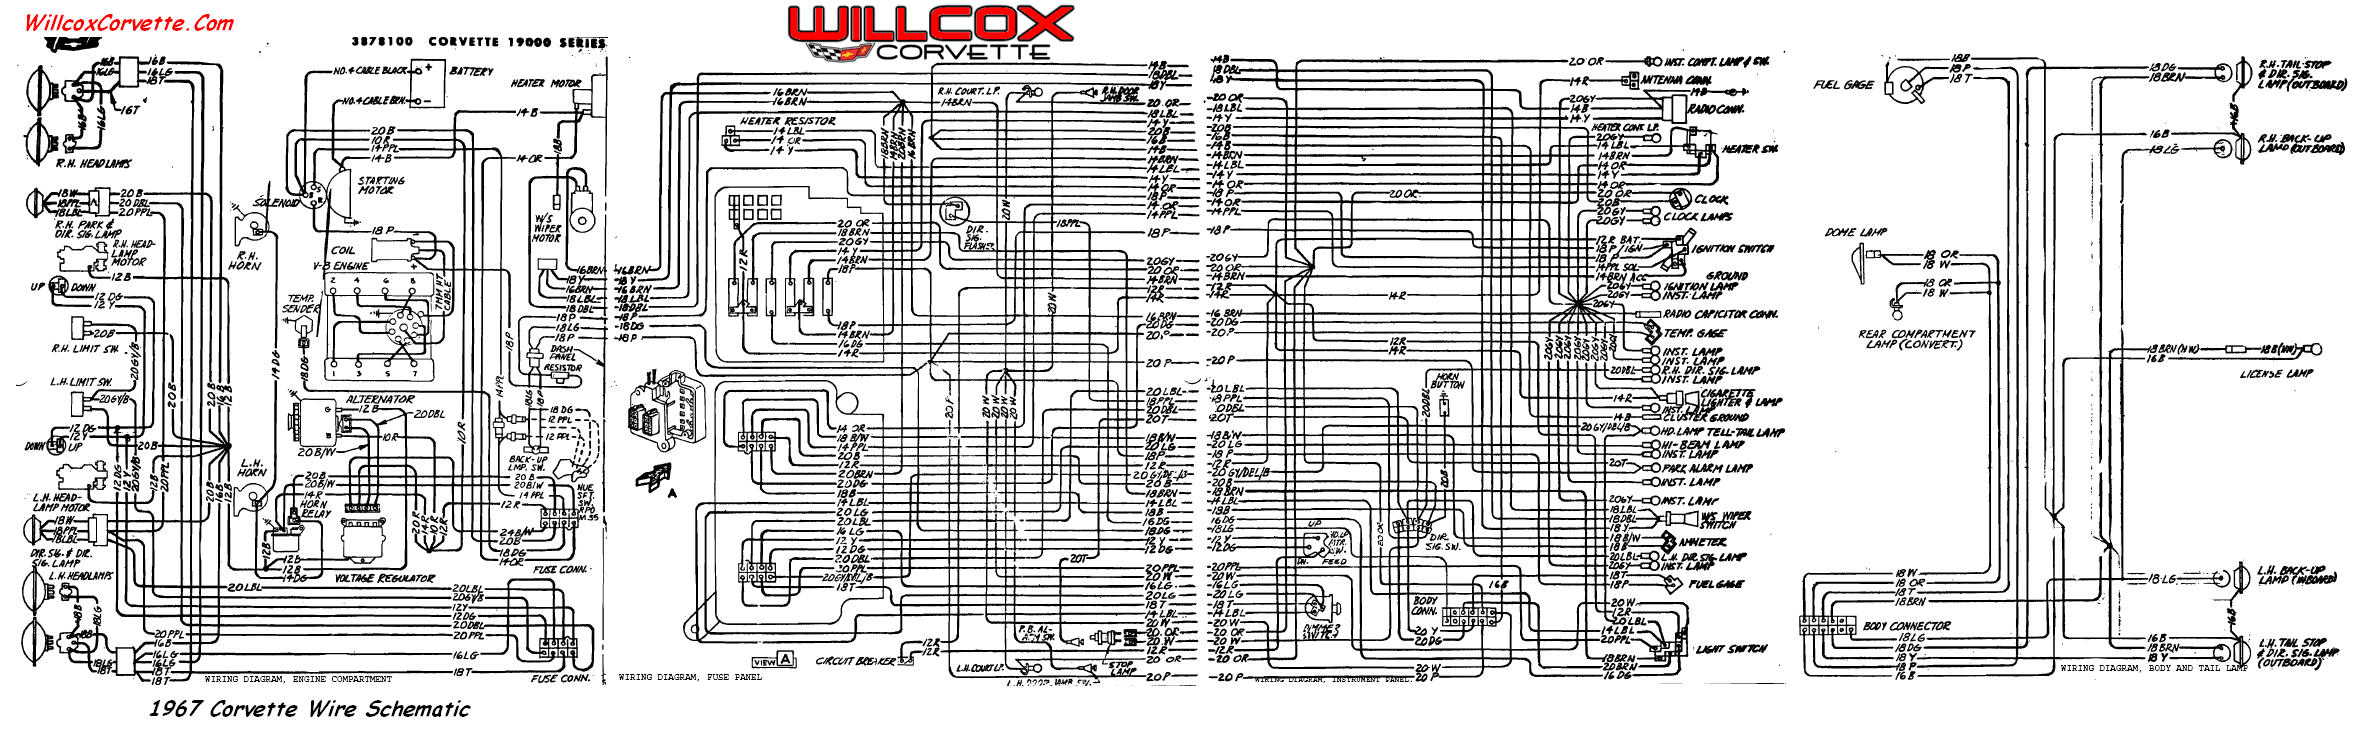 Diagram 77 Corvette Wiring Diagram Schematic Full Version Hd Quality Diagram Schematic Soft Wiring Media90 It